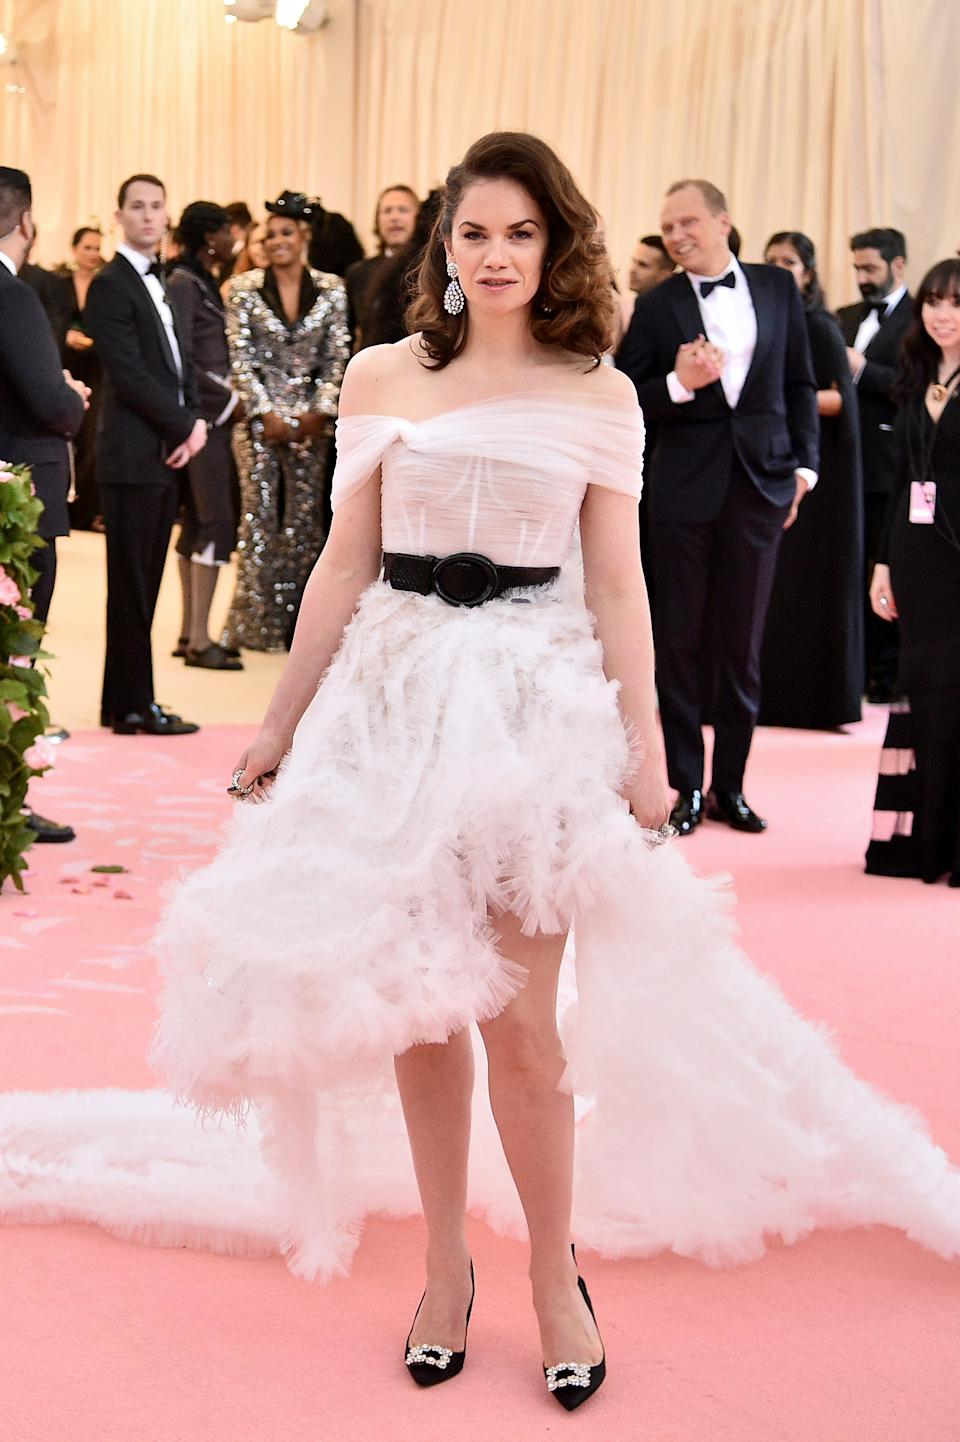 """<h1 class=""""title"""">Ruth Wilson in Oscar de la Renta and Roger Vivier shoes wearing Colette jewelry</h1><cite class=""""credit"""">Photo: Getty Images</cite>"""